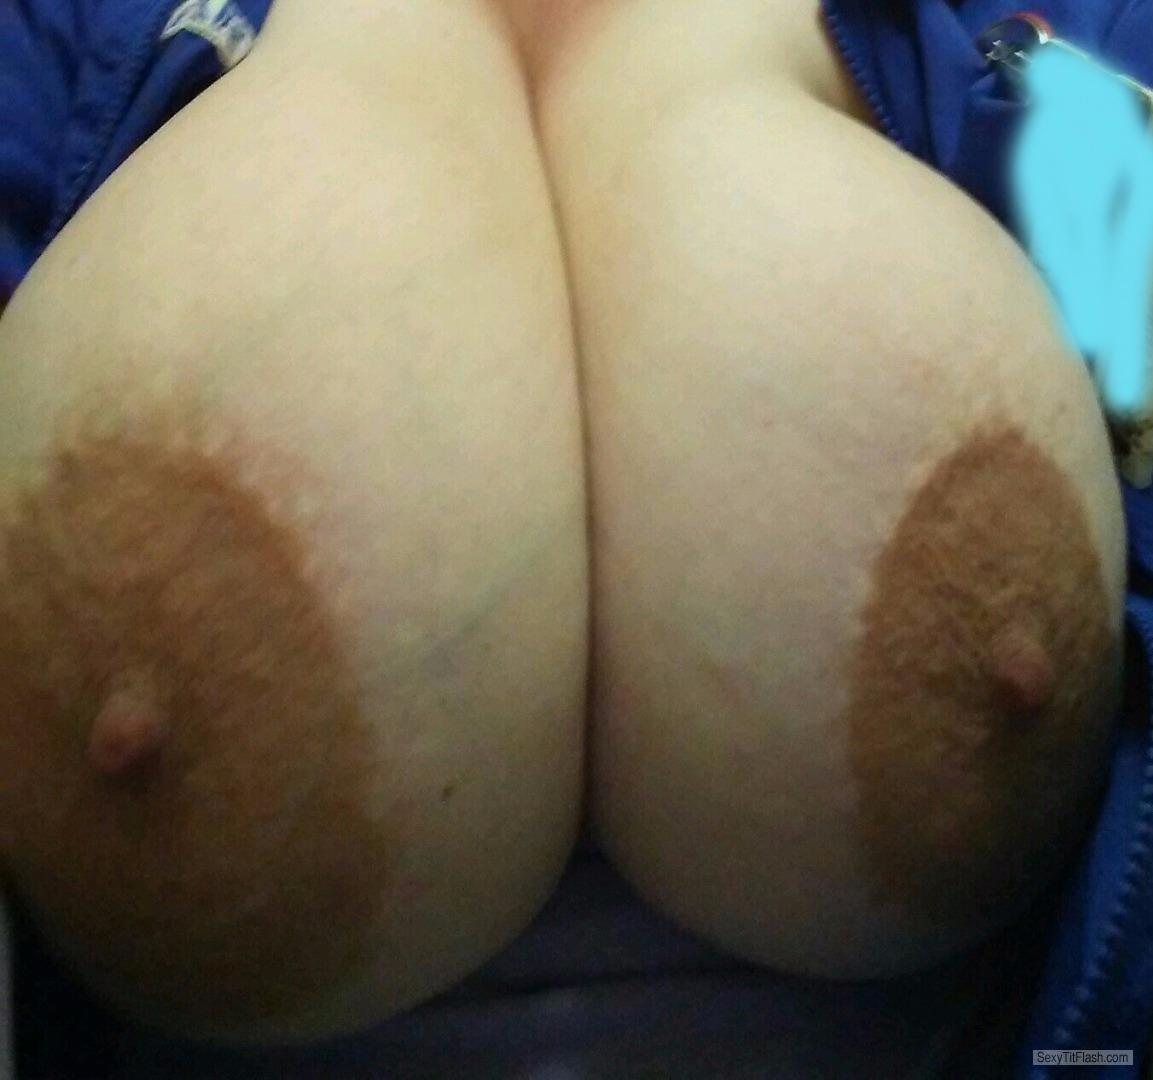 Tit Flash: My Very Big Tits (Selfie) - Double Damn from United States